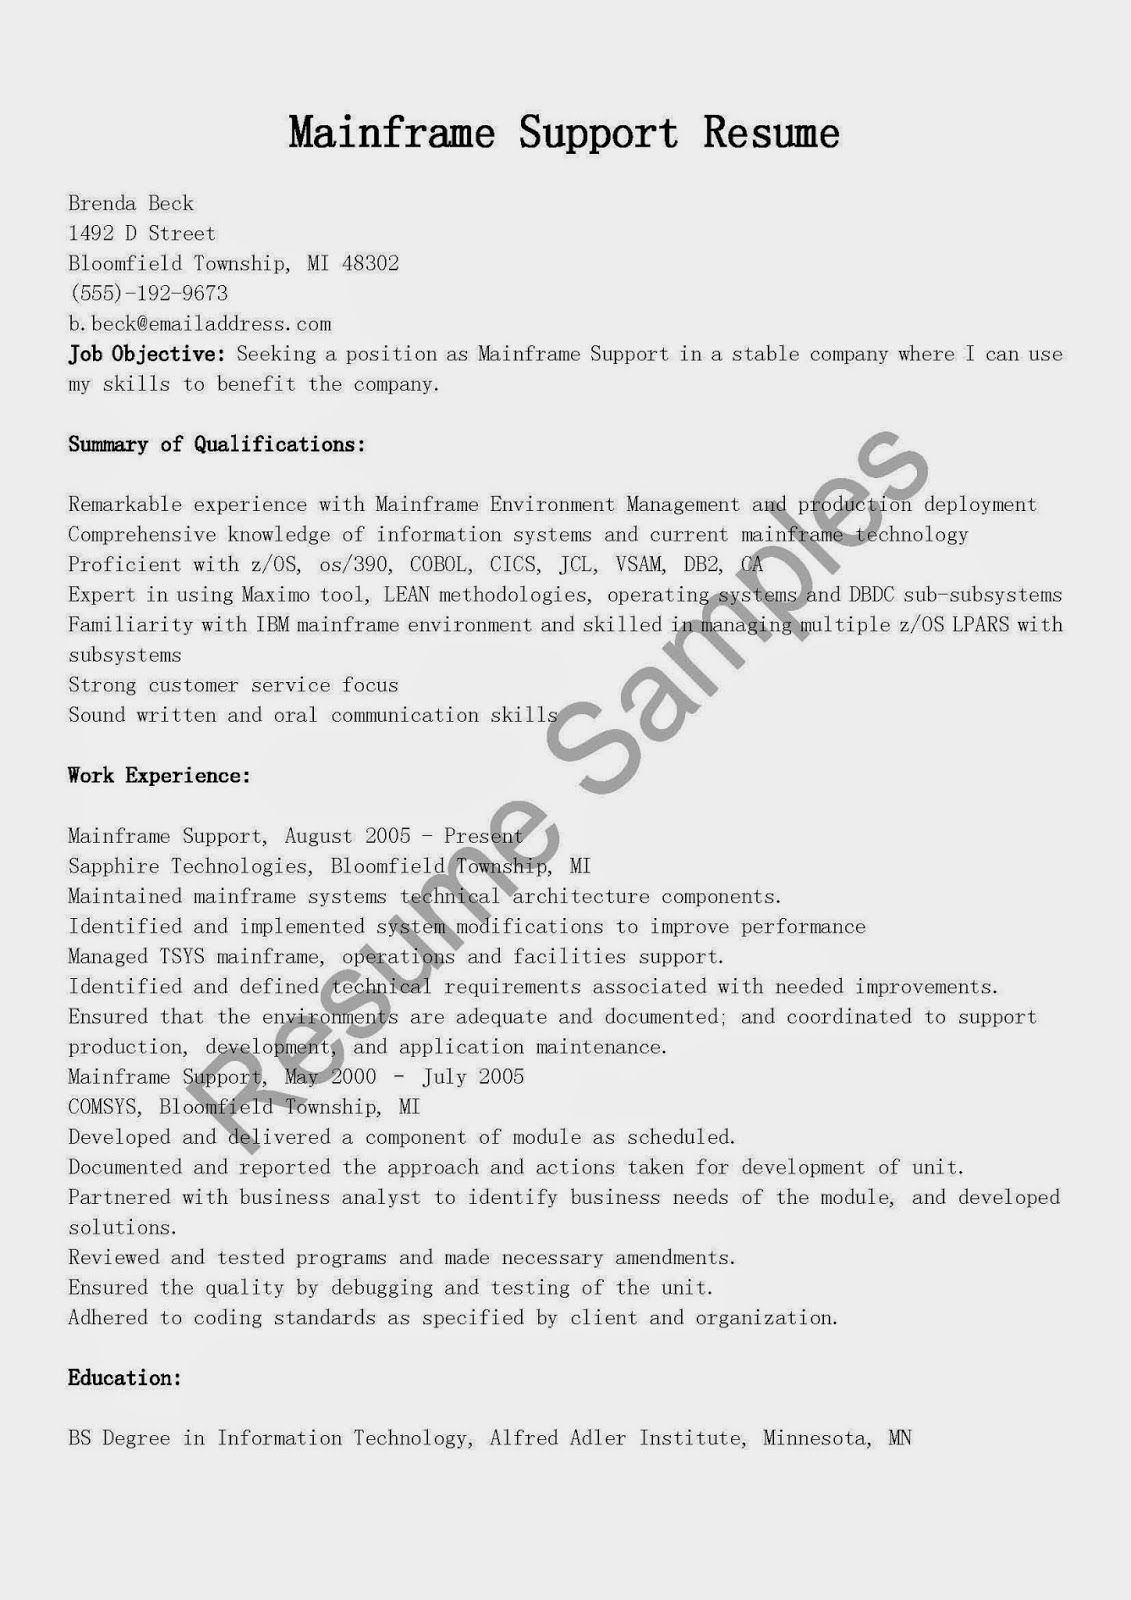 Mainframe Support Resume Sample  Resume Samples